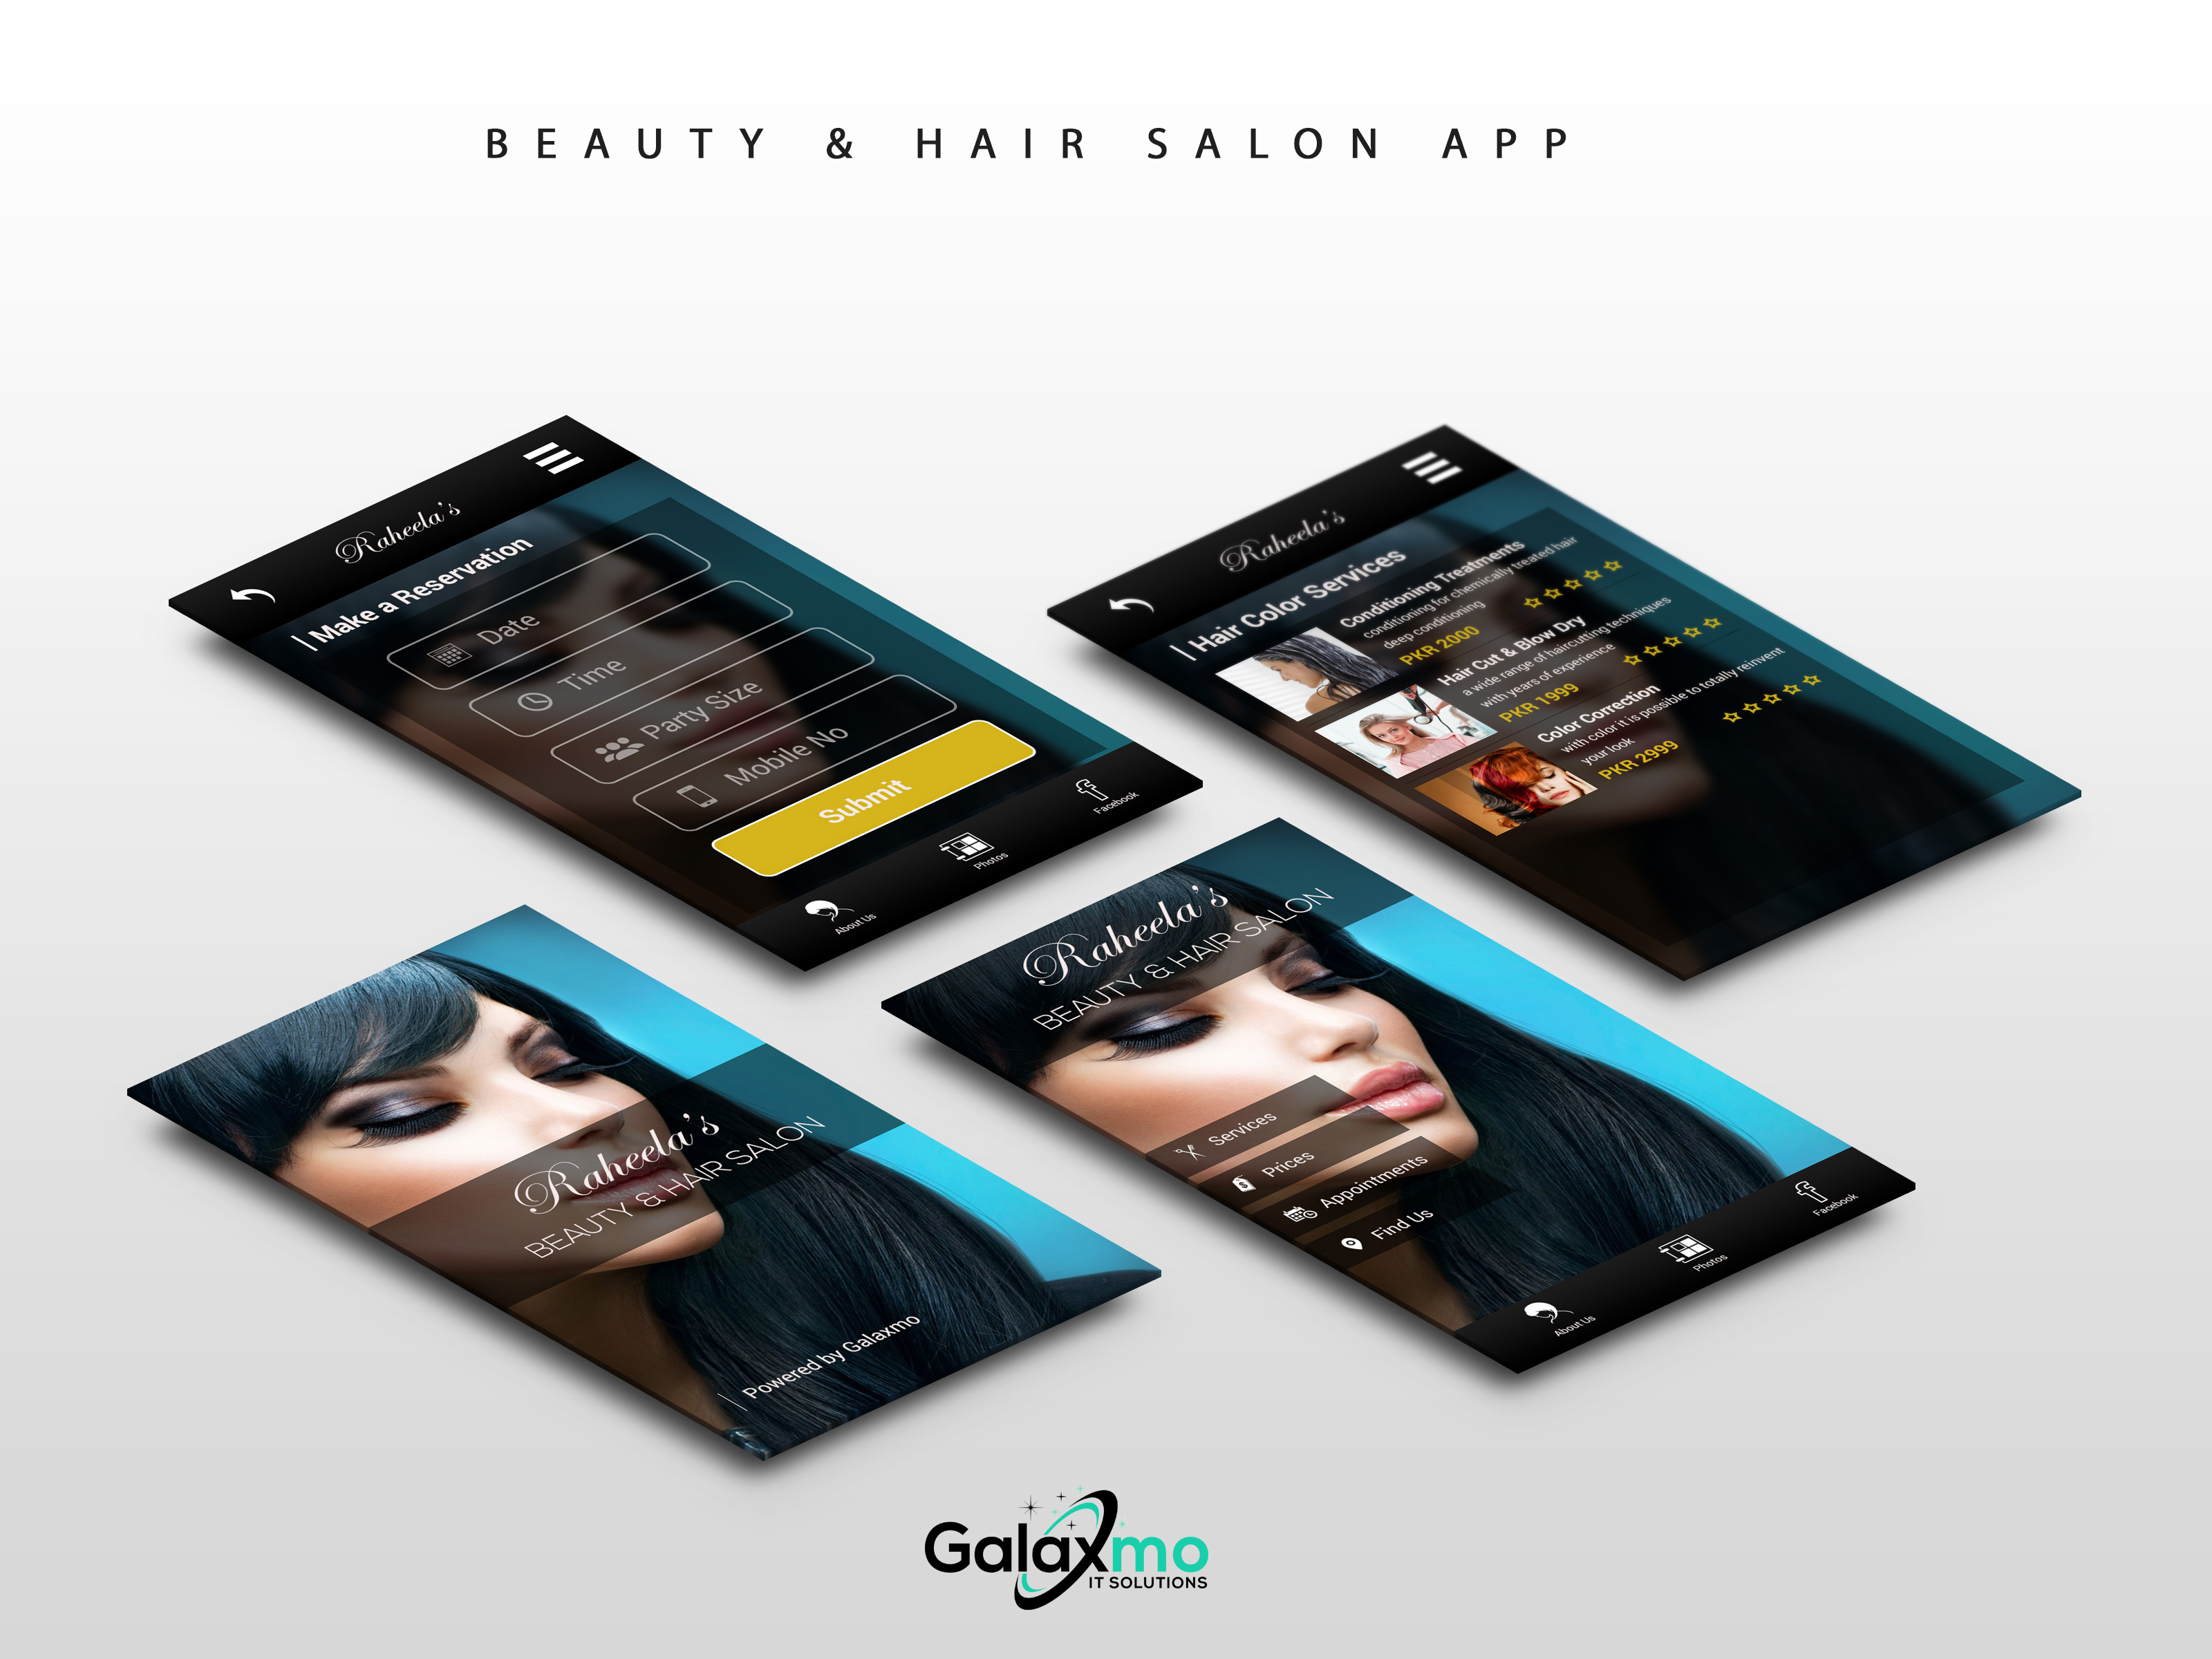 Beauty And Hair Salon App Design Galaxmo It Solutions